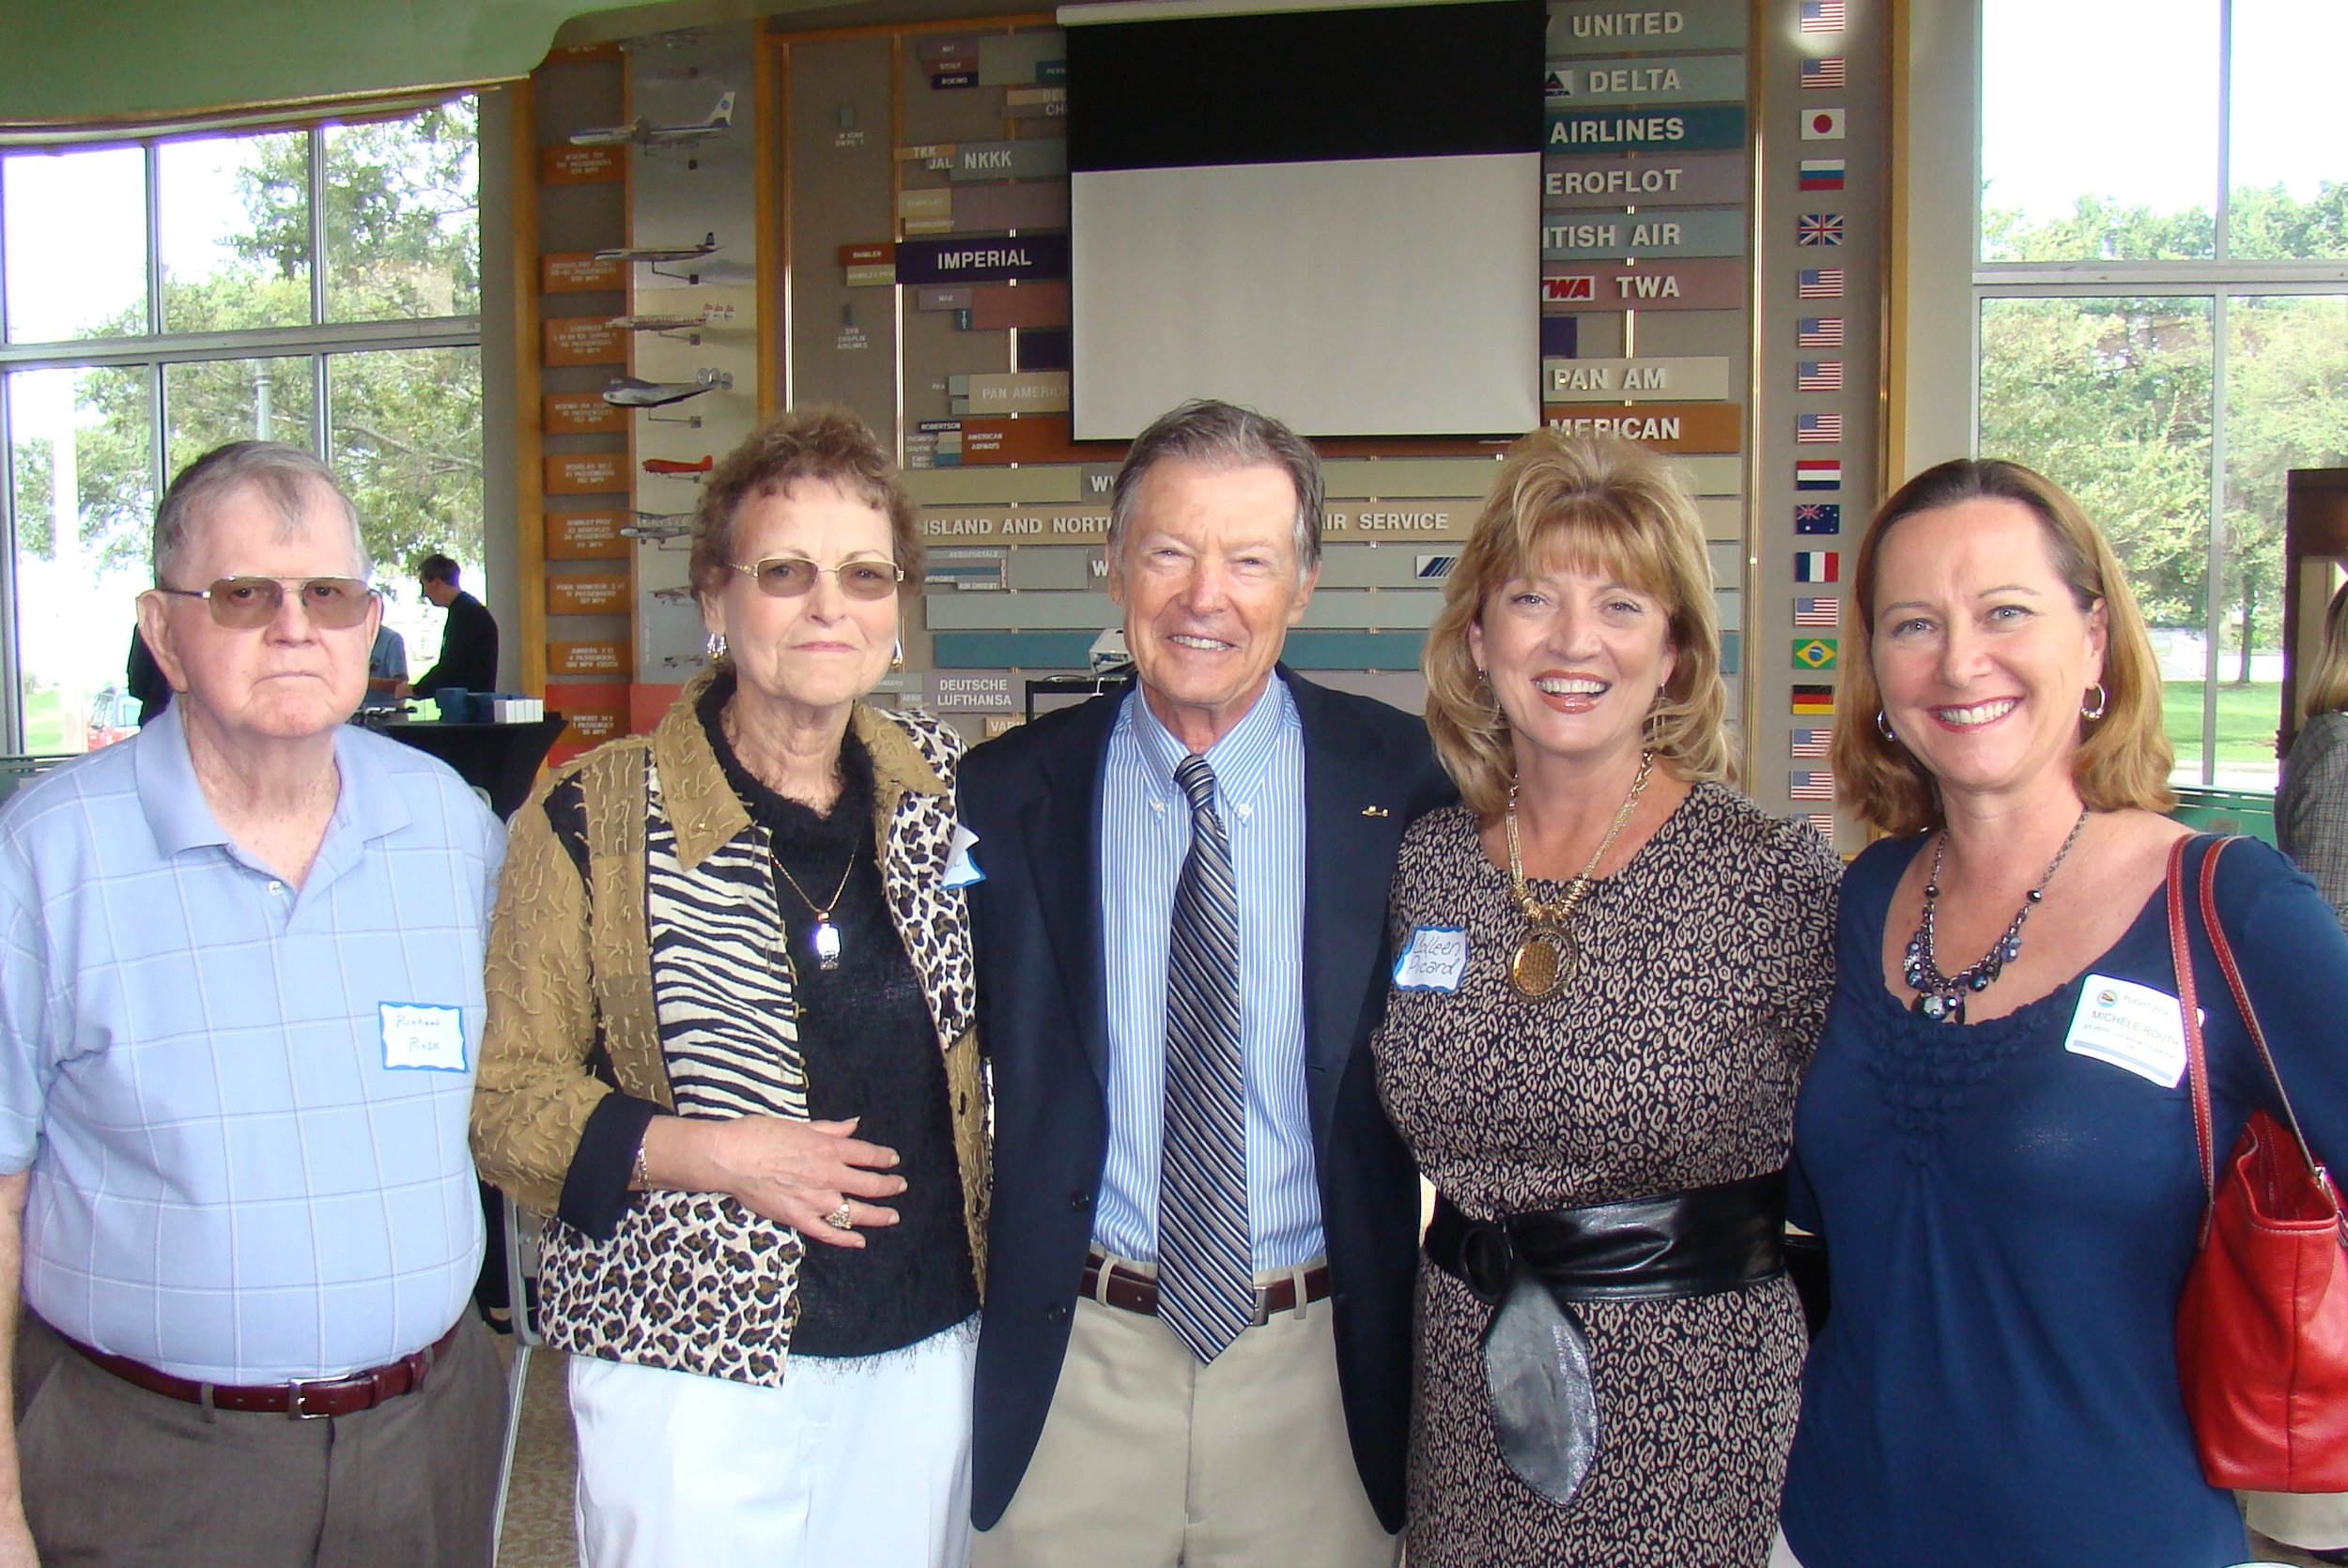 Richard Rose, Kim Michael, Al Michjada, Colleen Picard & Michele Routh - 1, 24 Oct '13.JPG